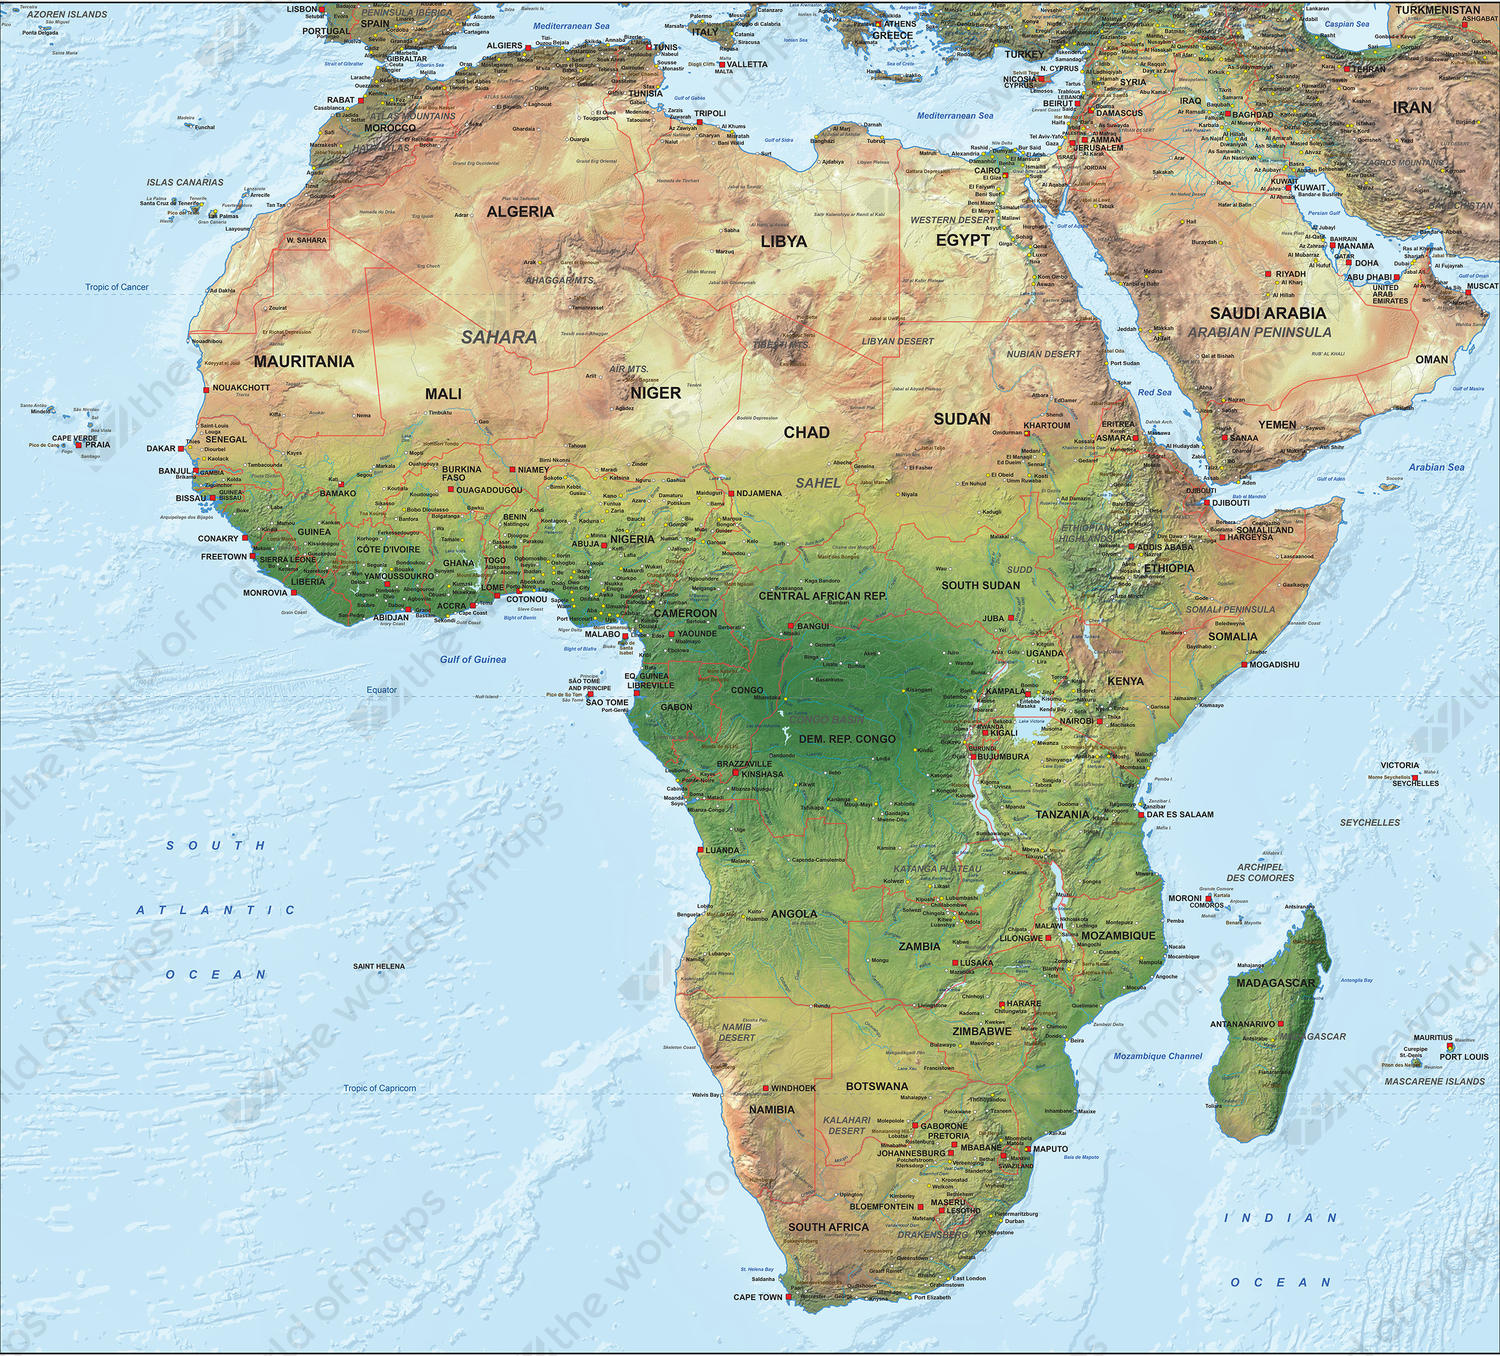 Digital Physical Map Africa The World Of Mapscom - Central africa map